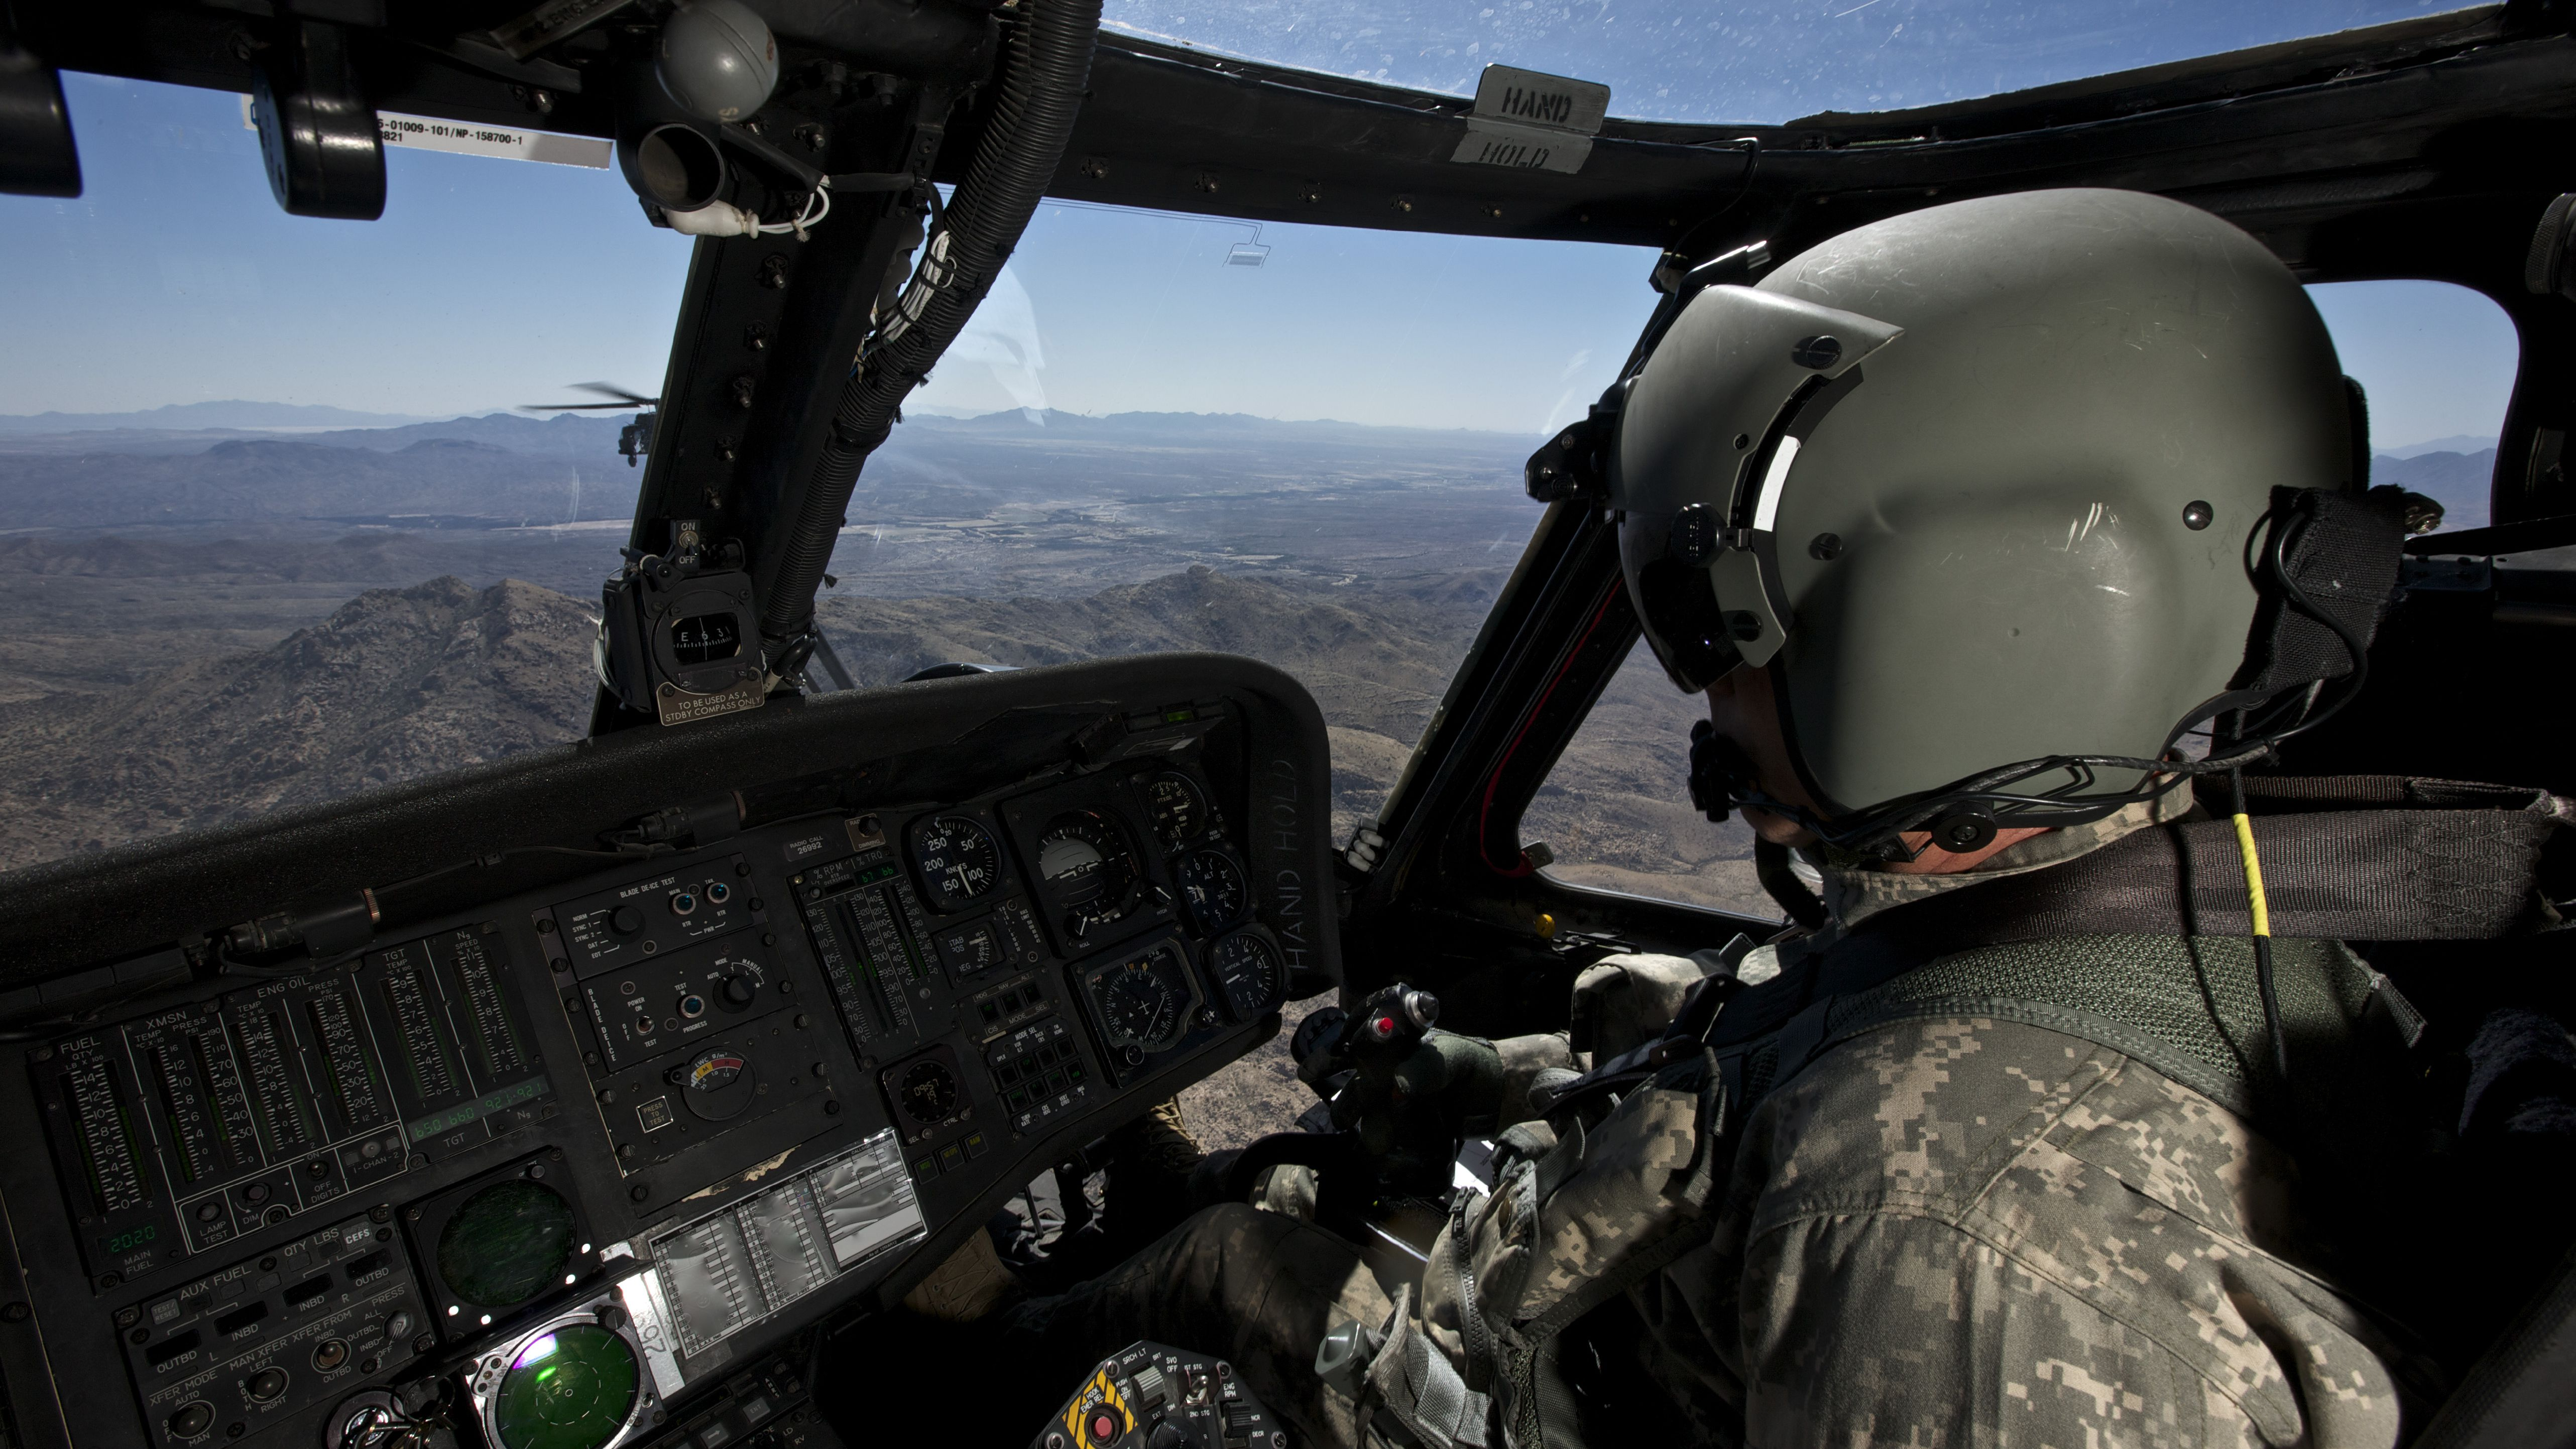 Army Aviation Medical Standards and Flight Physicals